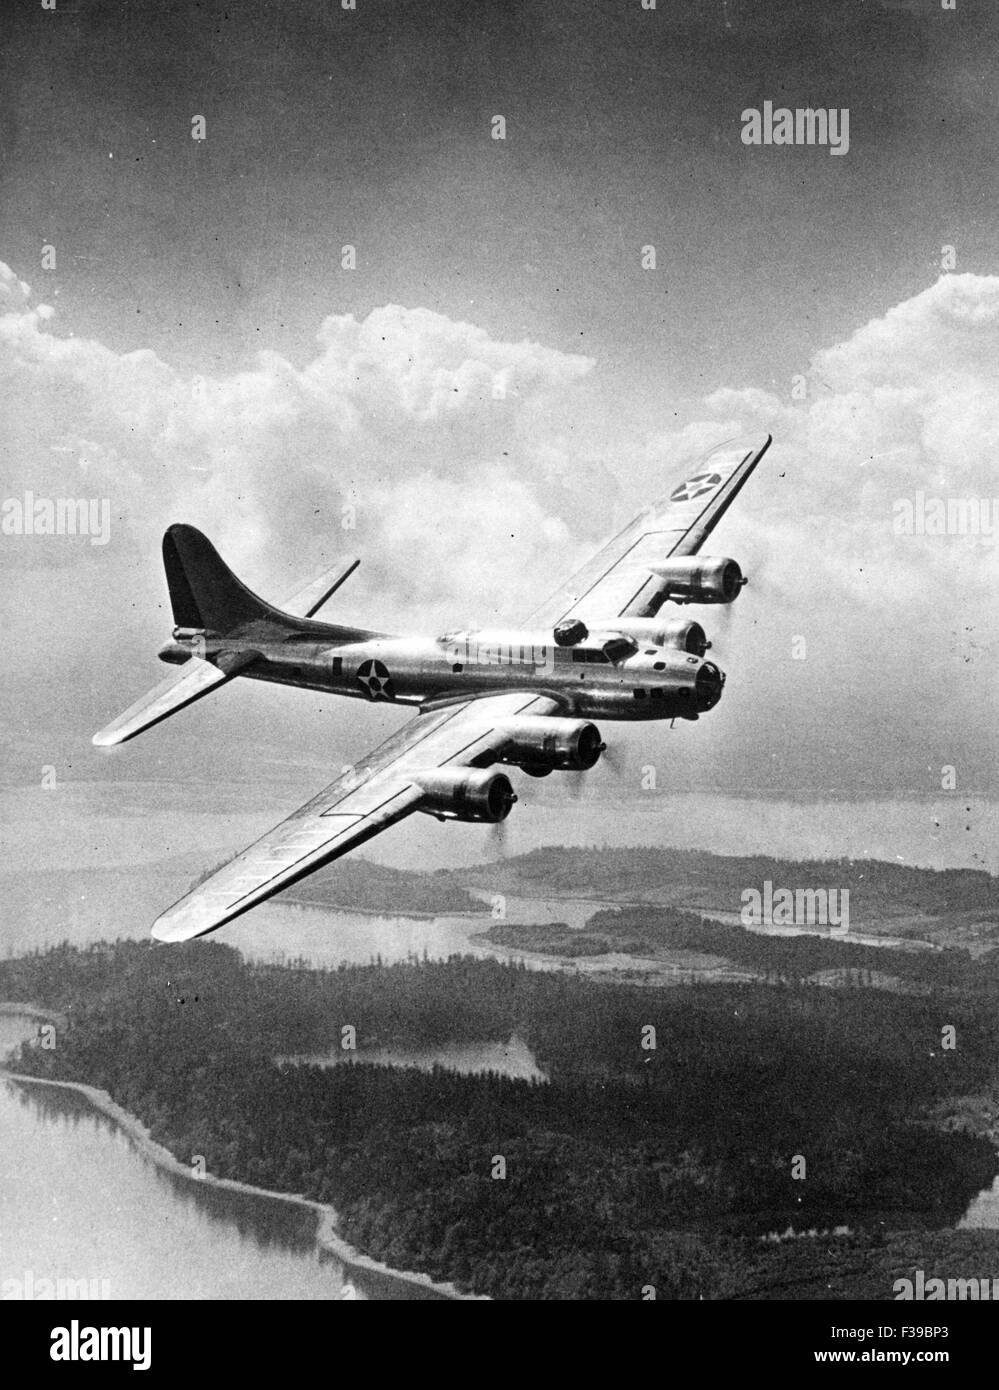 BOEING B-17 FLYING FORTRESS - Stock Image